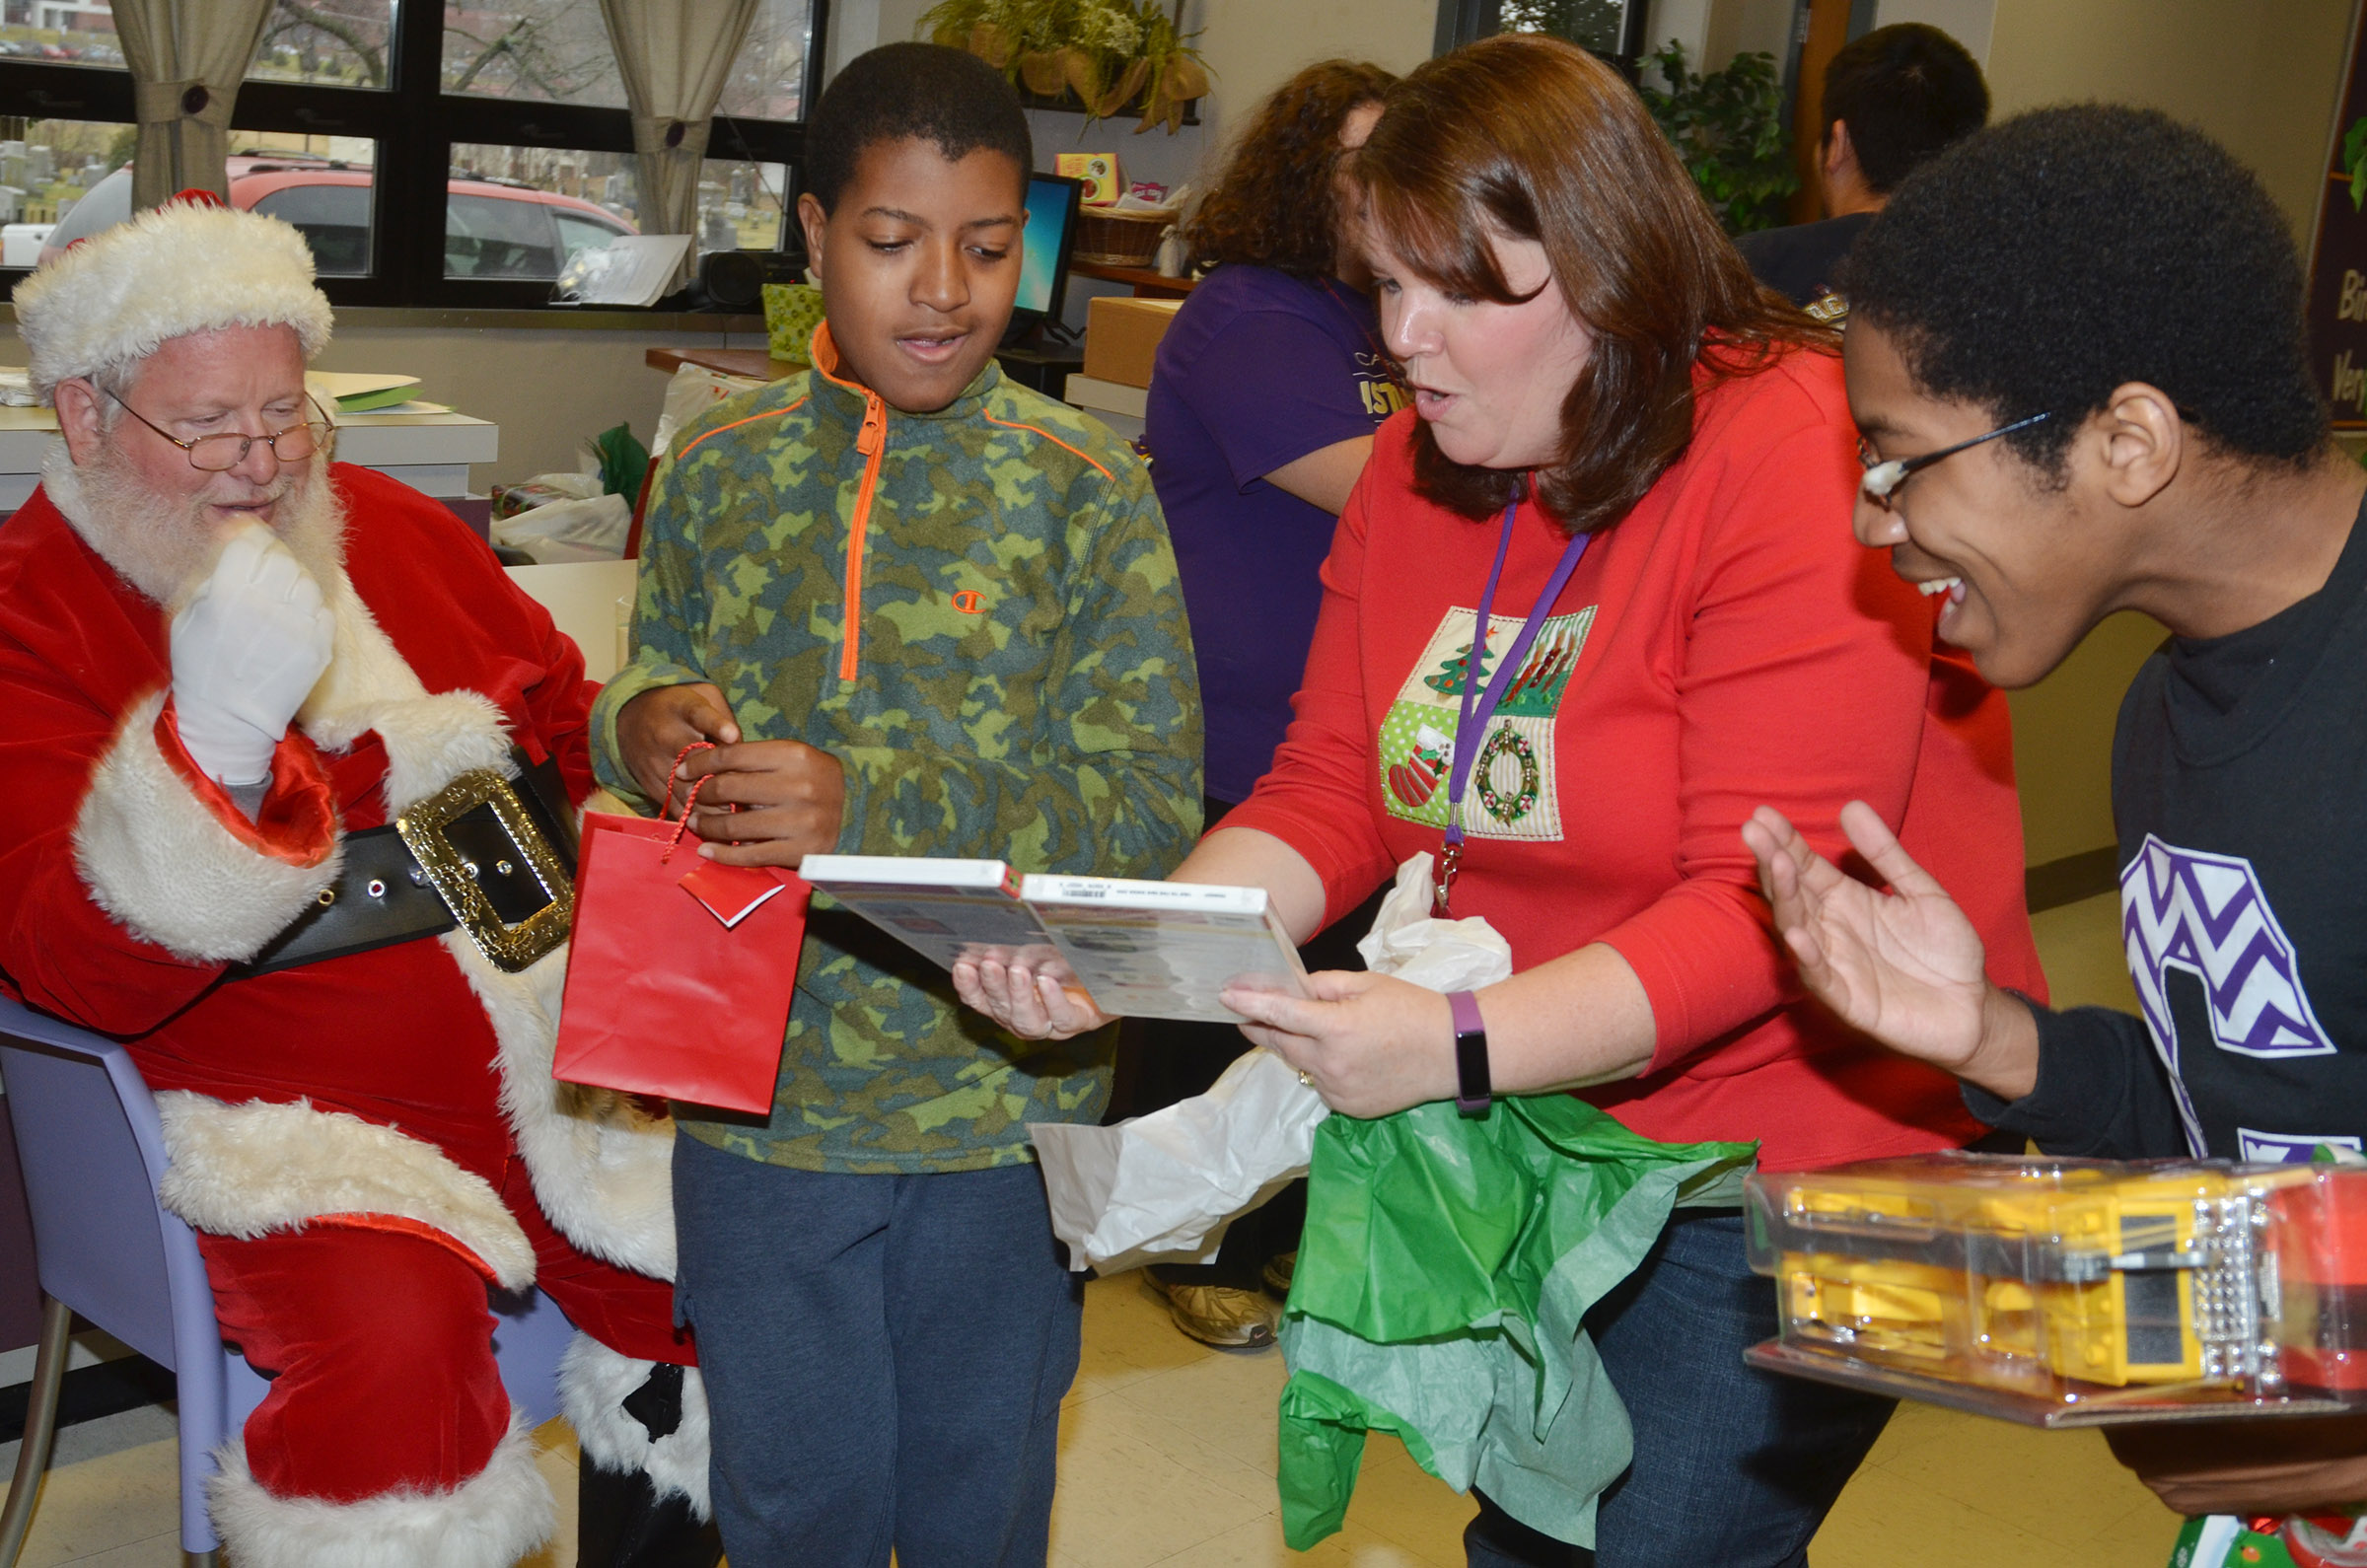 Campbellsville Middle School Guidance Counselor Beth Wiedewitsch helps CHS sophomore Chris Moran, at left, open his gift from Santa. At right is CHS sophomore Travis Nash.